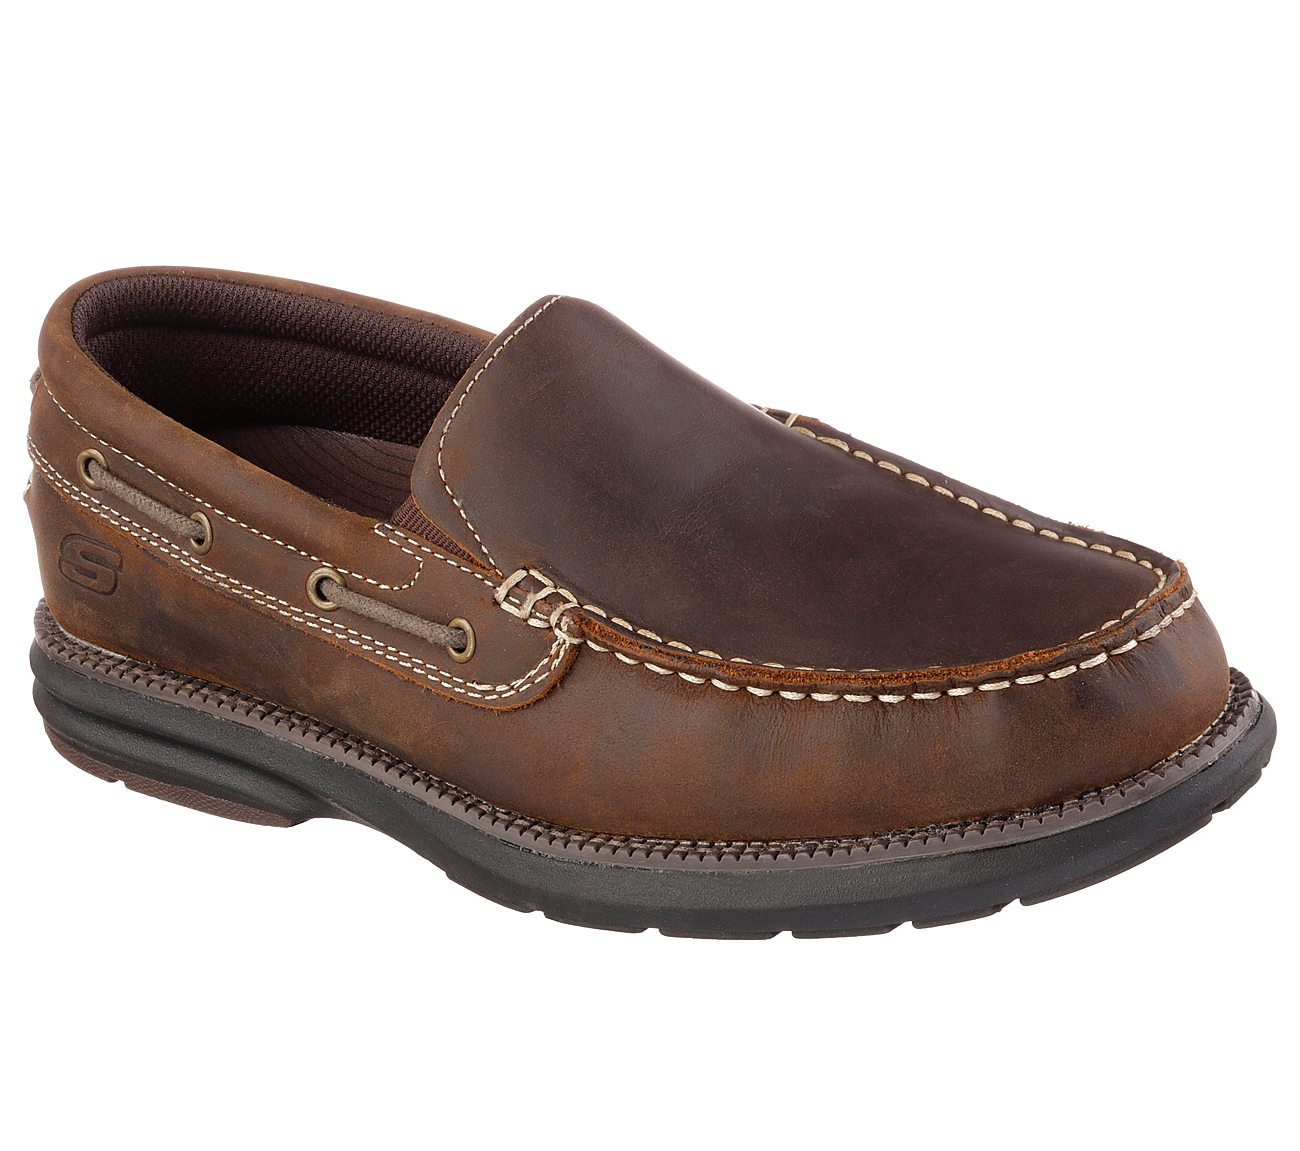 d44266cabd Buy SKECHERS Relaxed Fit: Volte - Pelix Boat Shoes Shoes only $55.00